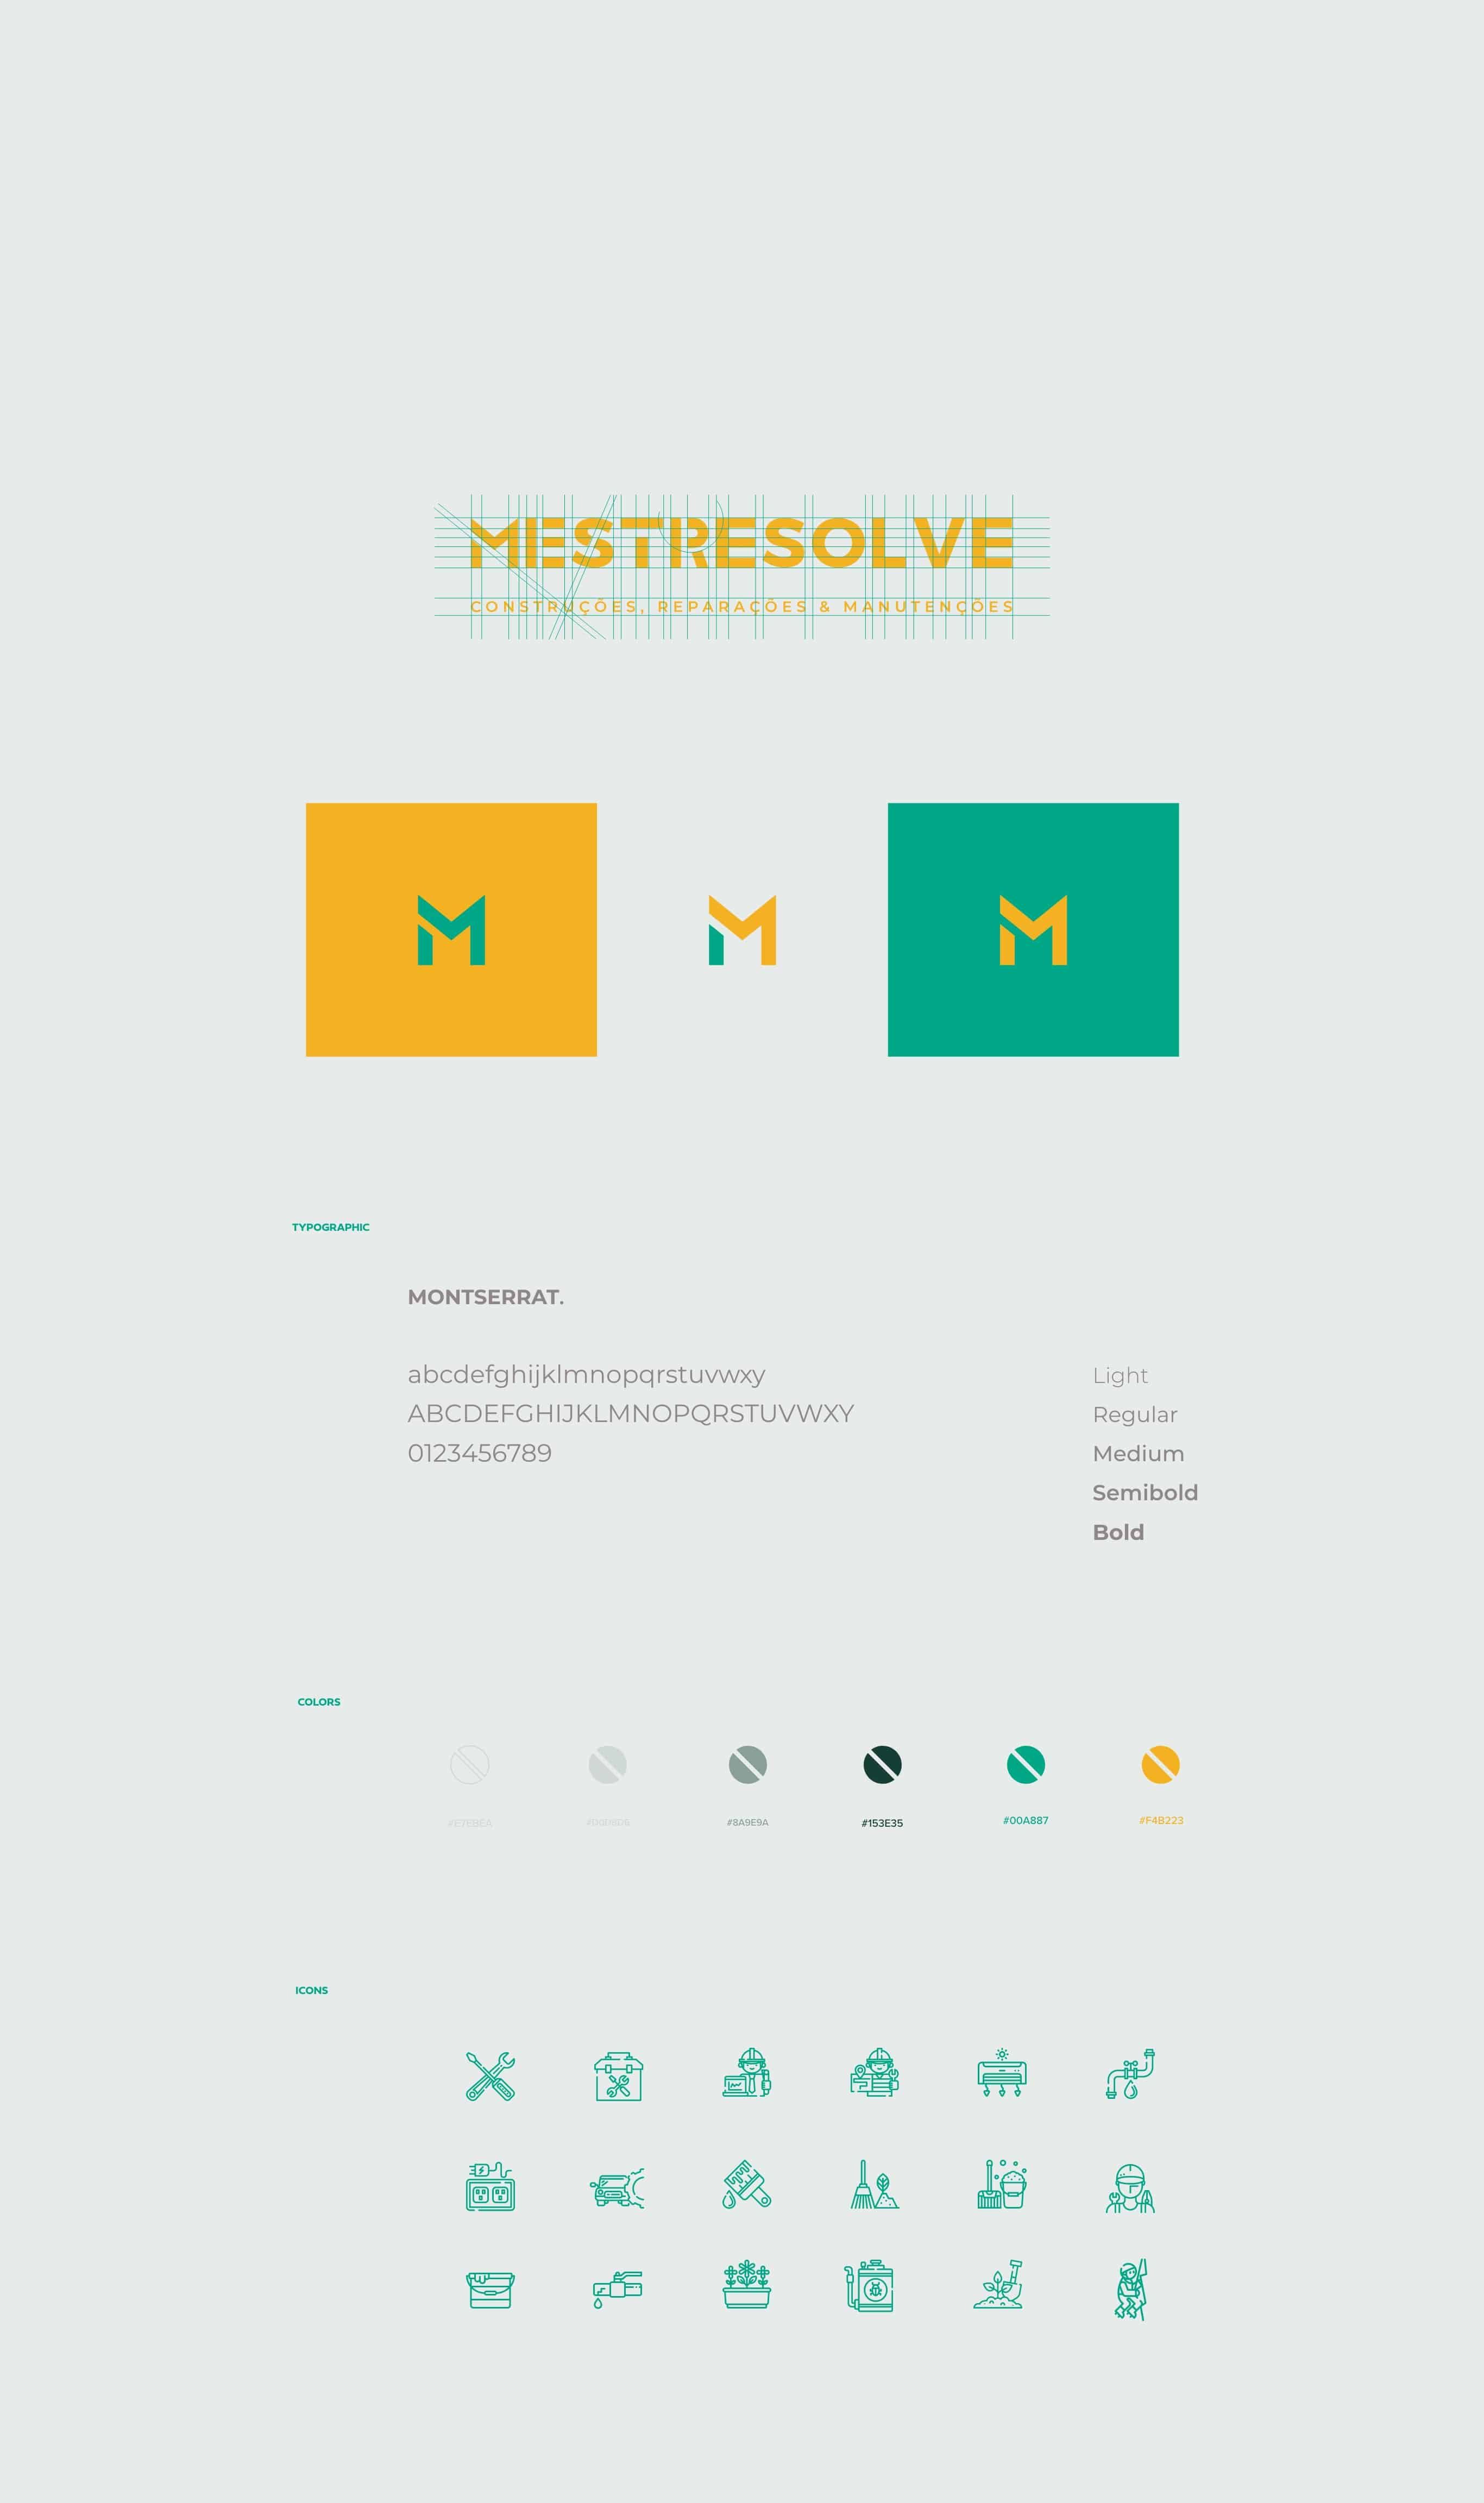 colors and fonts for mestre resolve